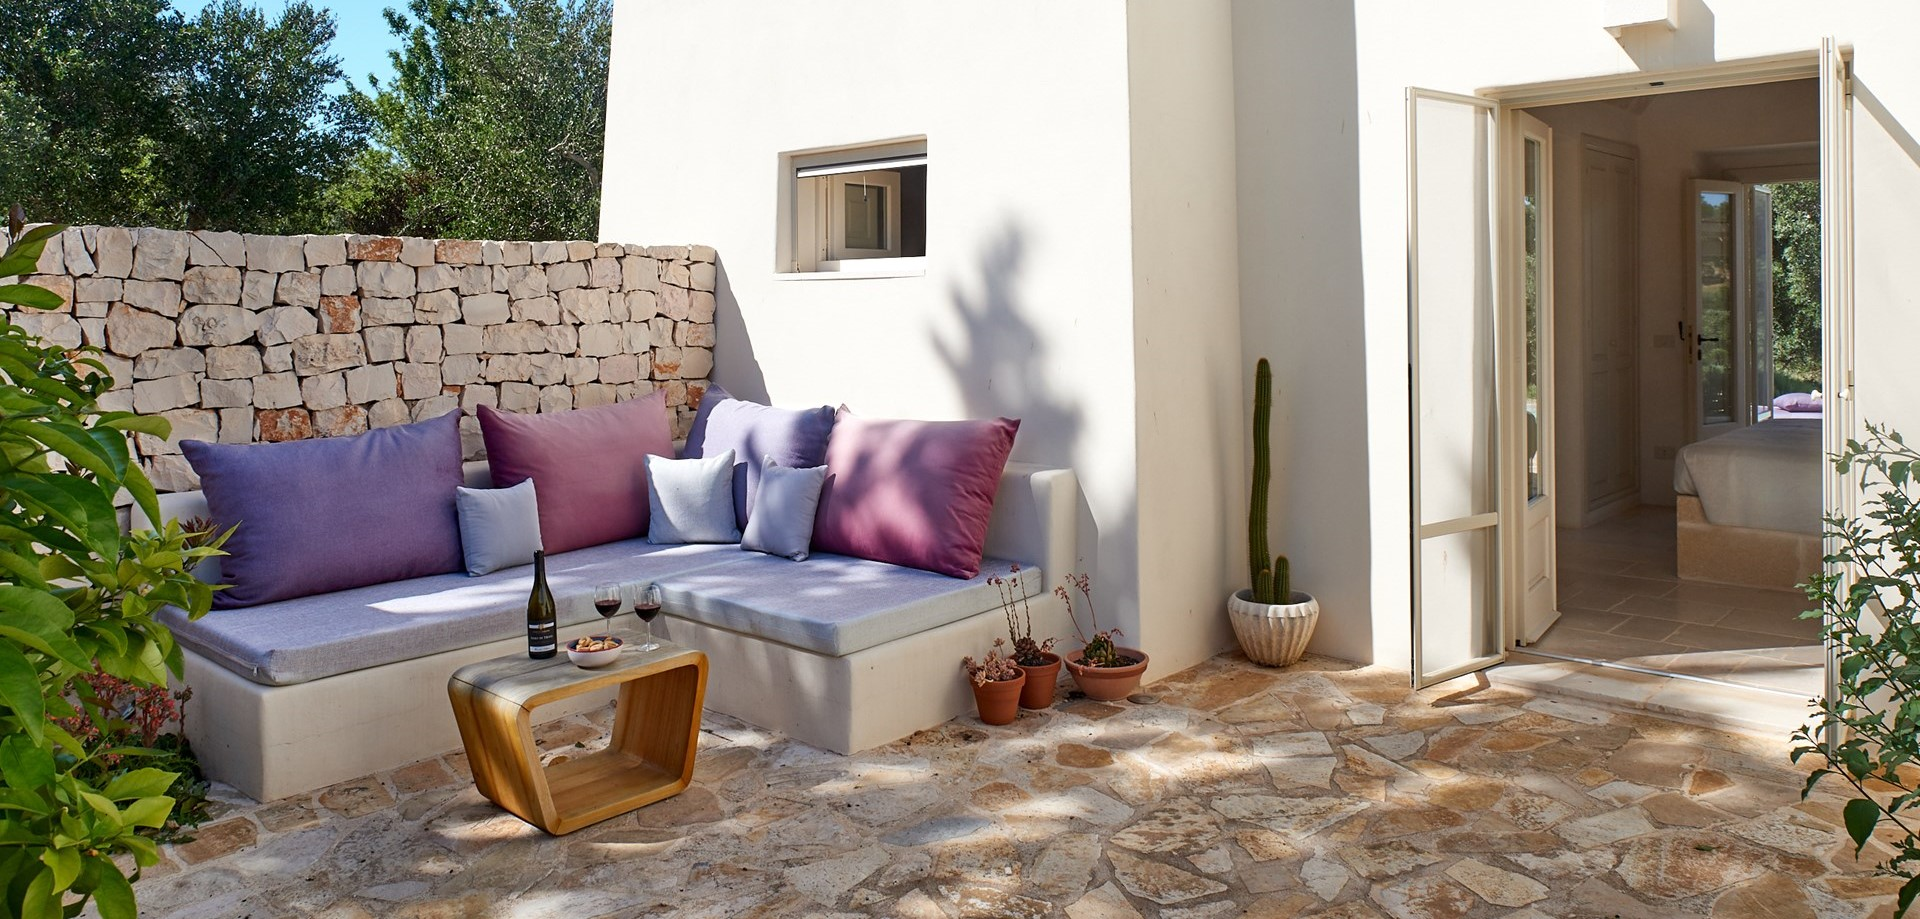 villa-verbena-puglia-bedroom-terrace